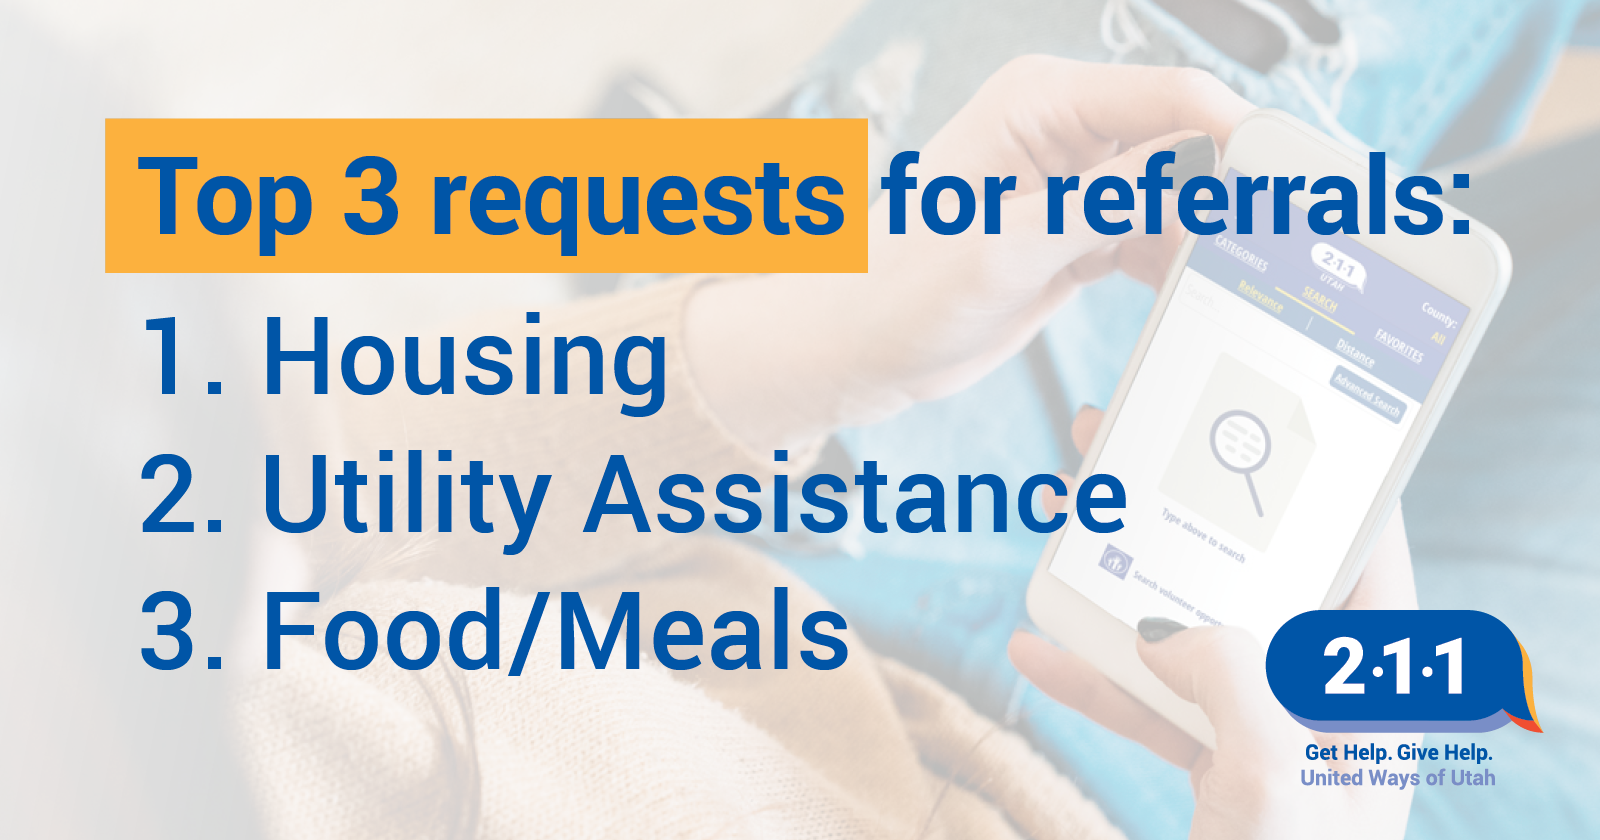 3 requests for referrals utah 211